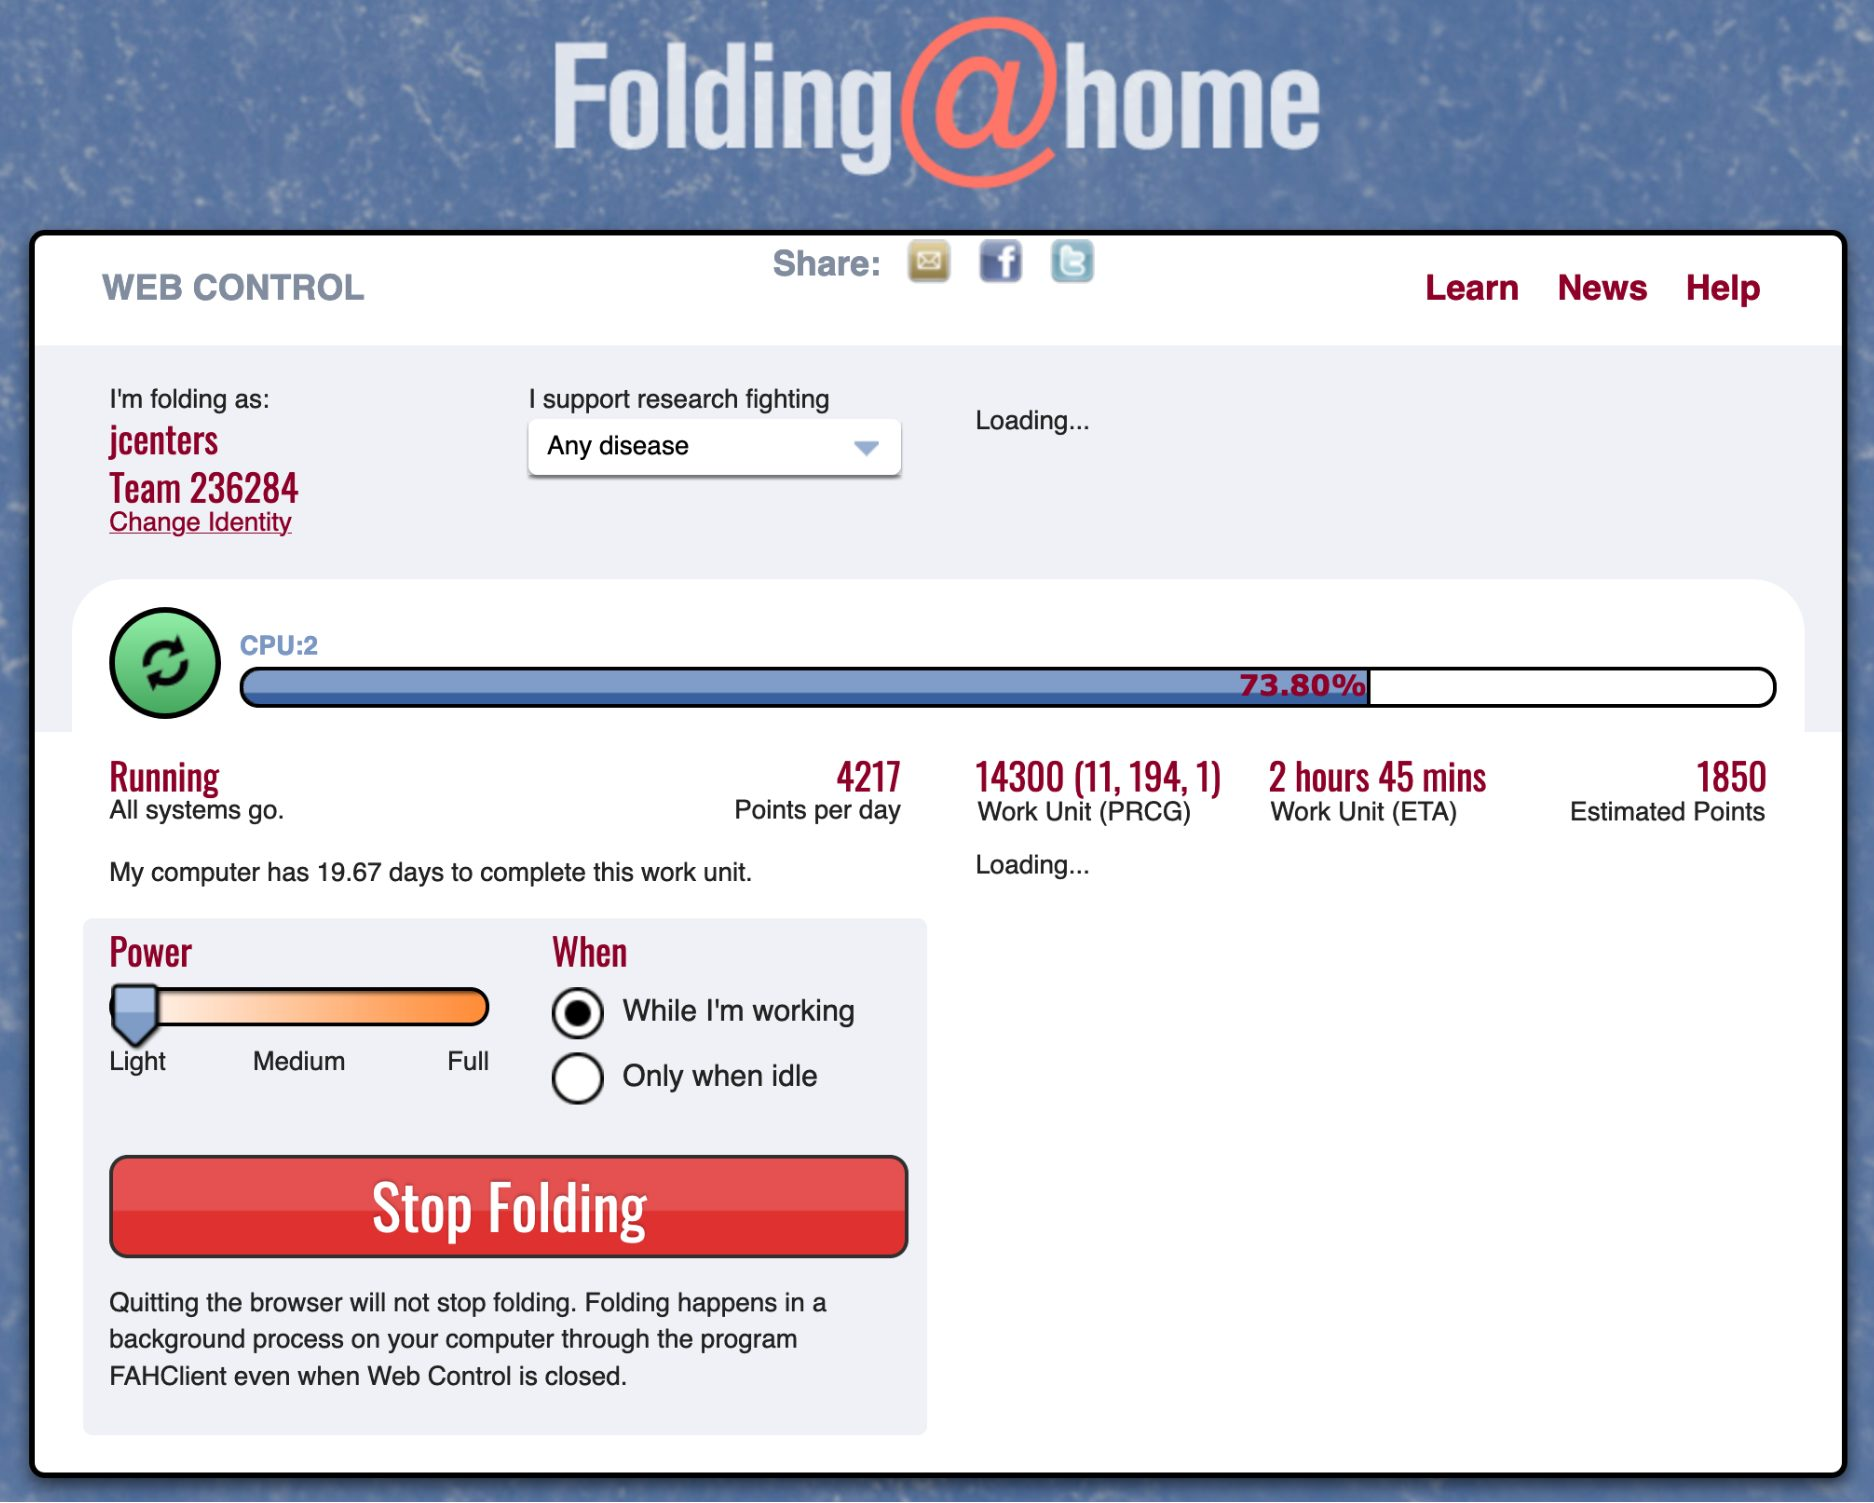 The Folding@home Web interface